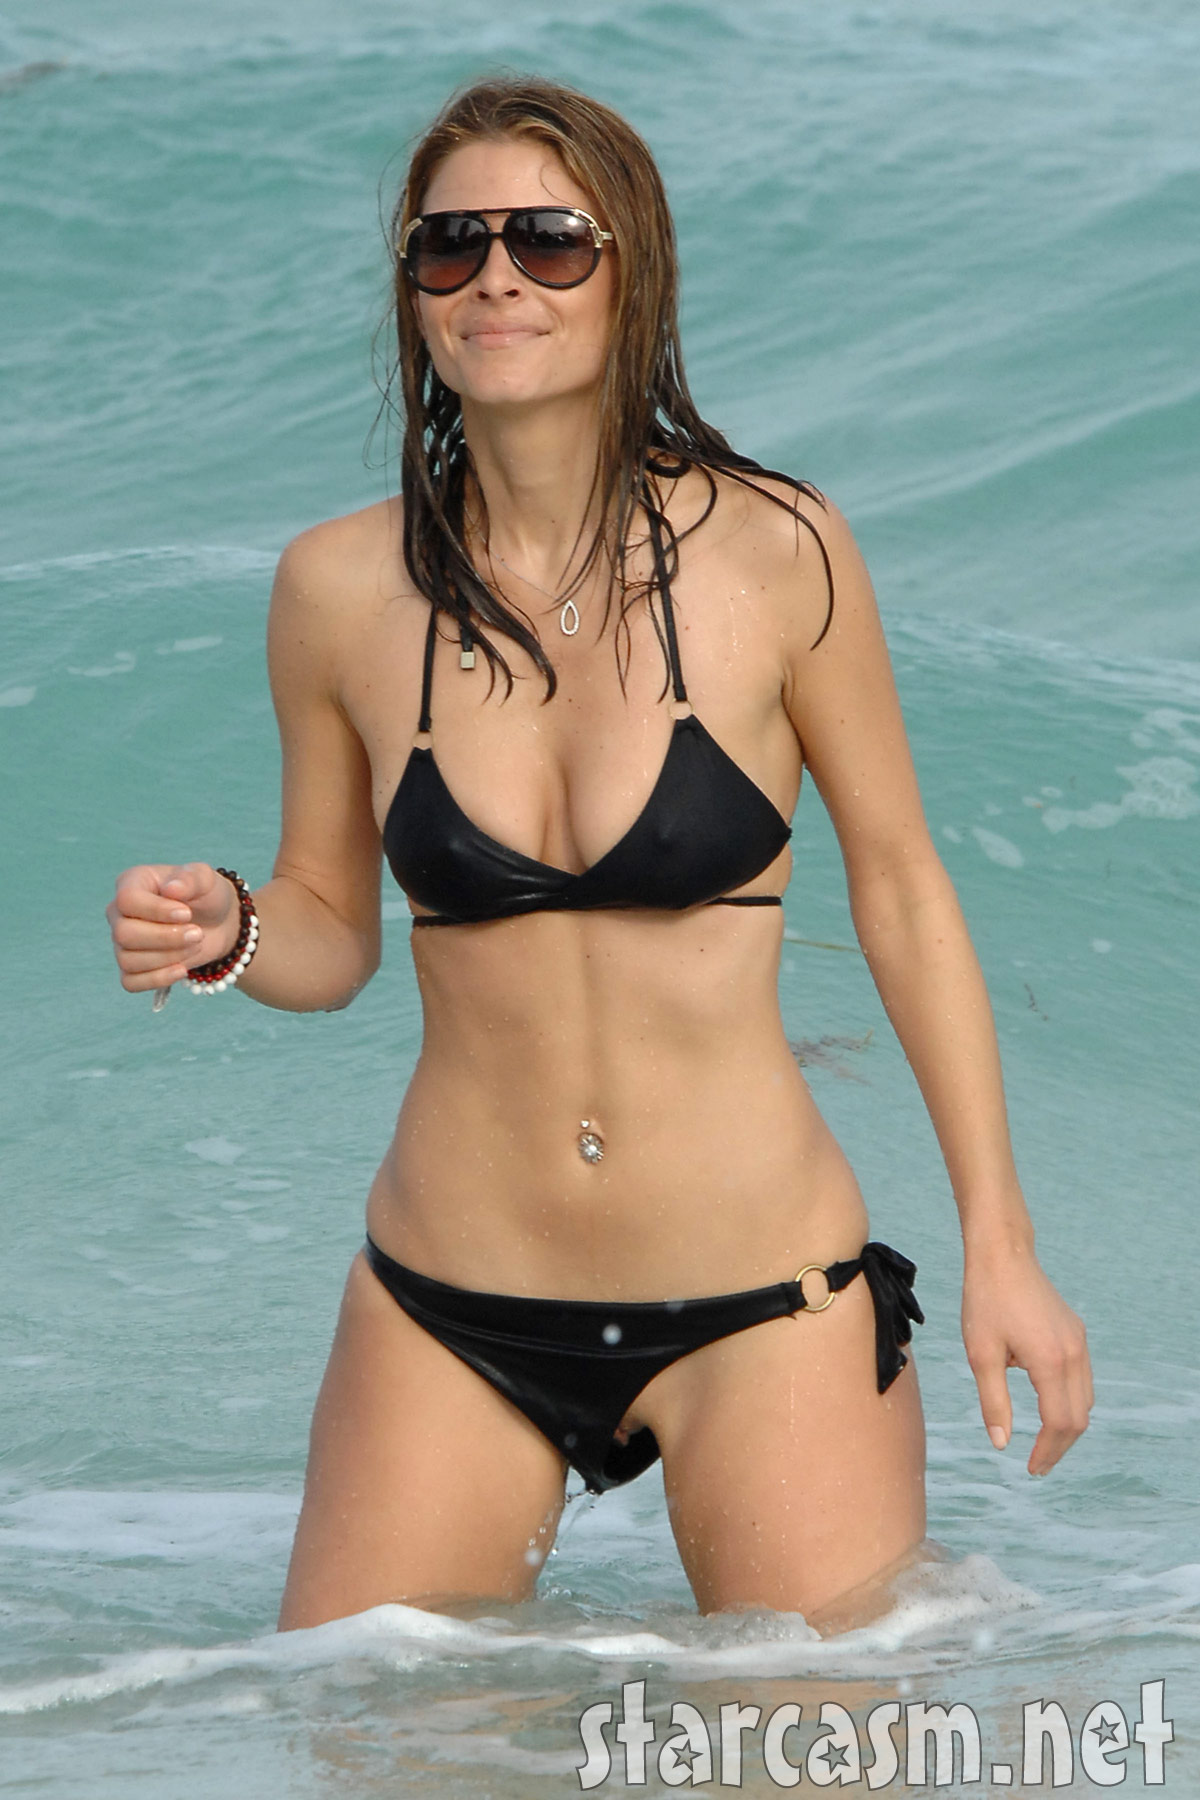 Now NSFW and with video Maria Menounos loses Super Bowl  : MariaMenounoswardrobemalfunction from www.the-mainboard.com size 1200 x 1800 jpeg 279kB